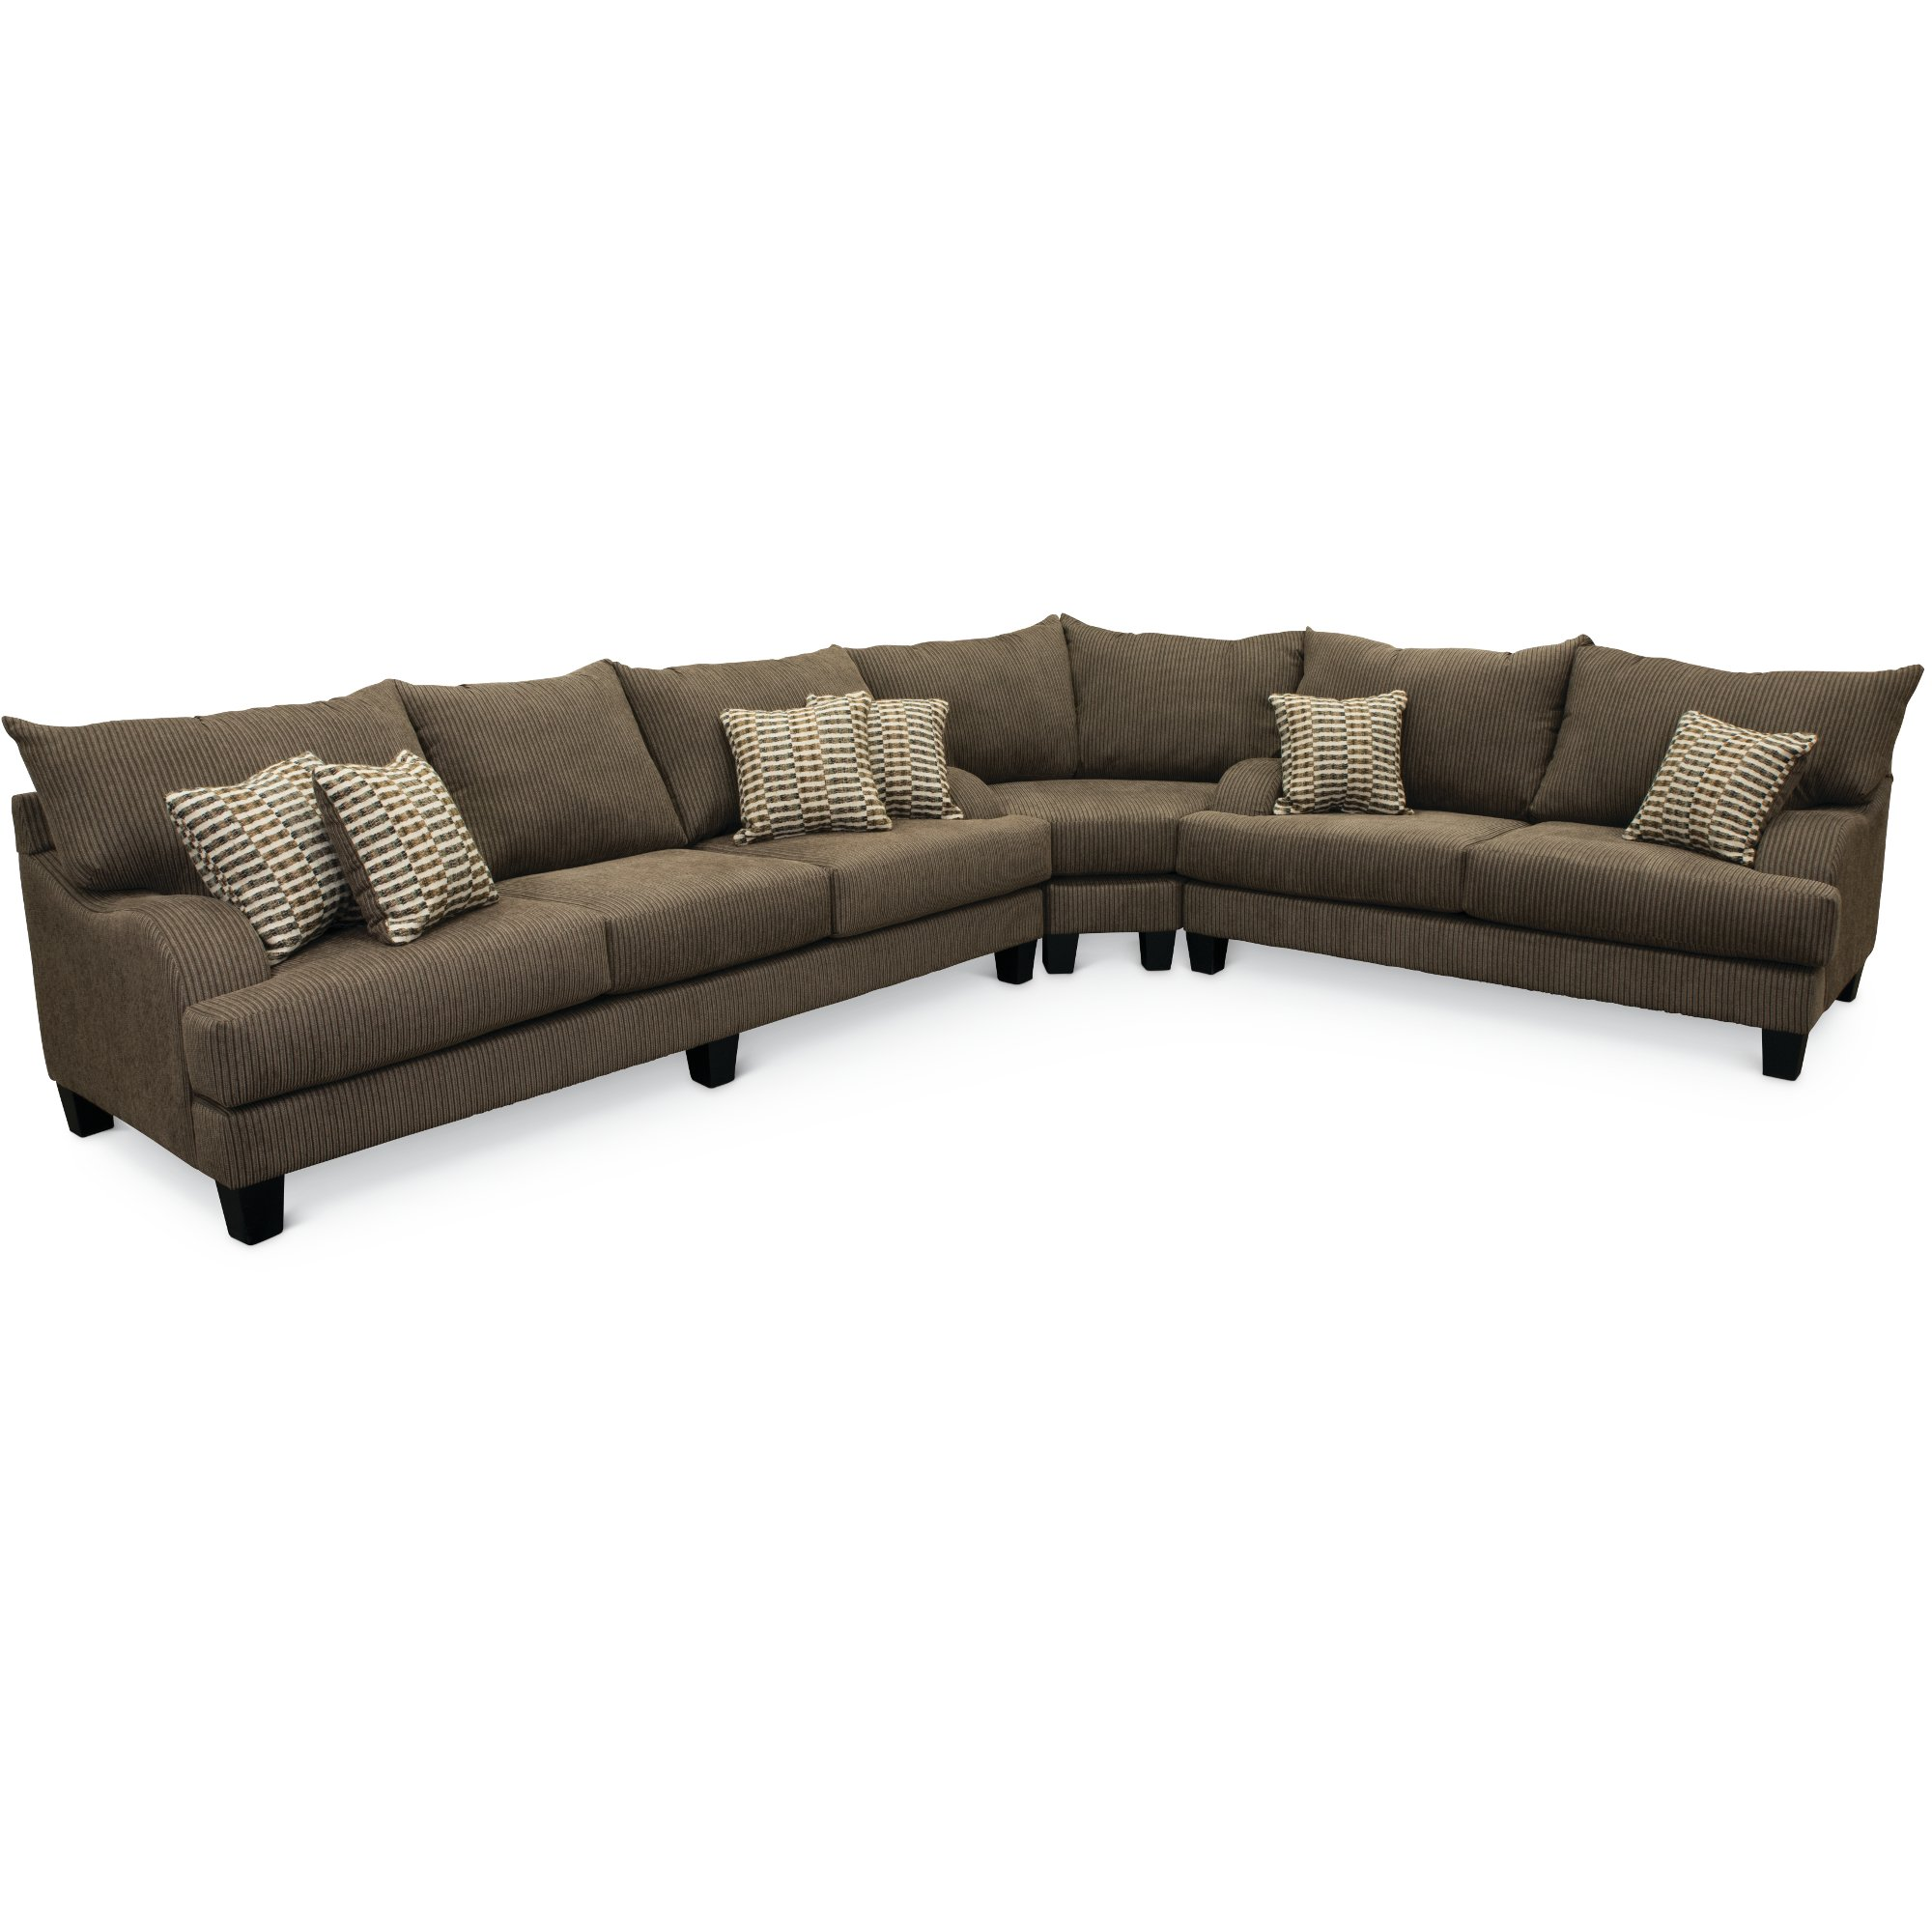 store sectionals furniture quarry view rcwilley living piece jsp indigo reclining room rock willey blue rc sectional